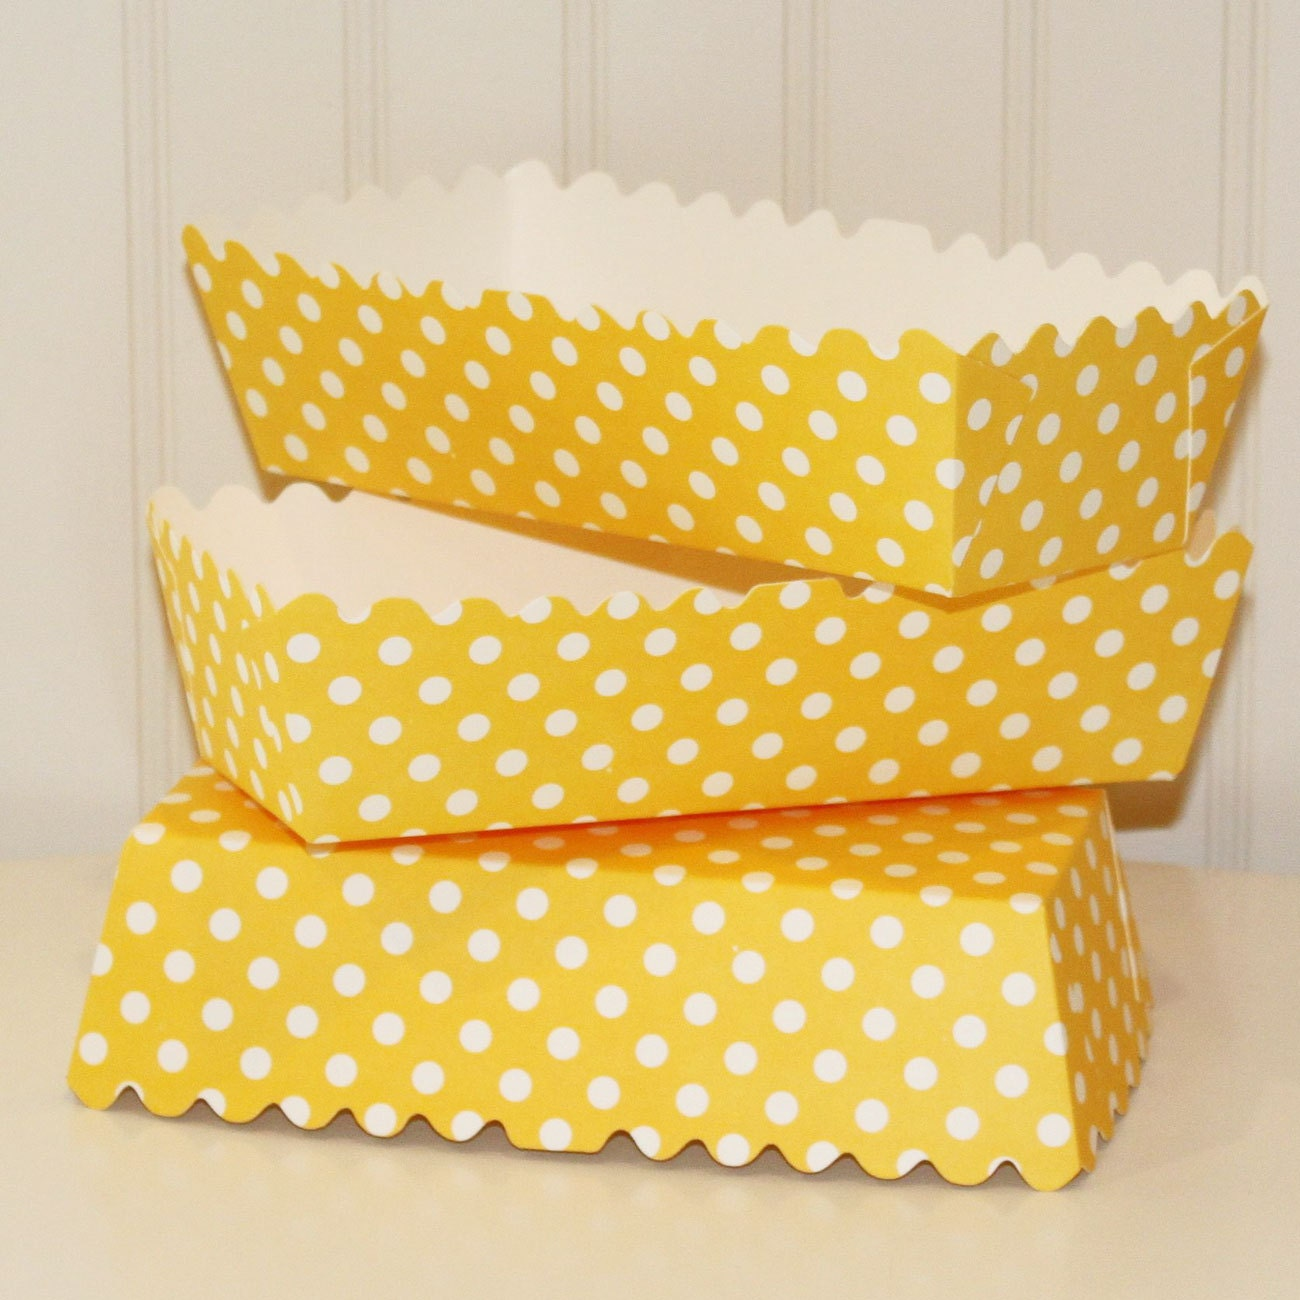 Paper Party Food Trays 5 Yellow Dot Paper Serving Trays Hot